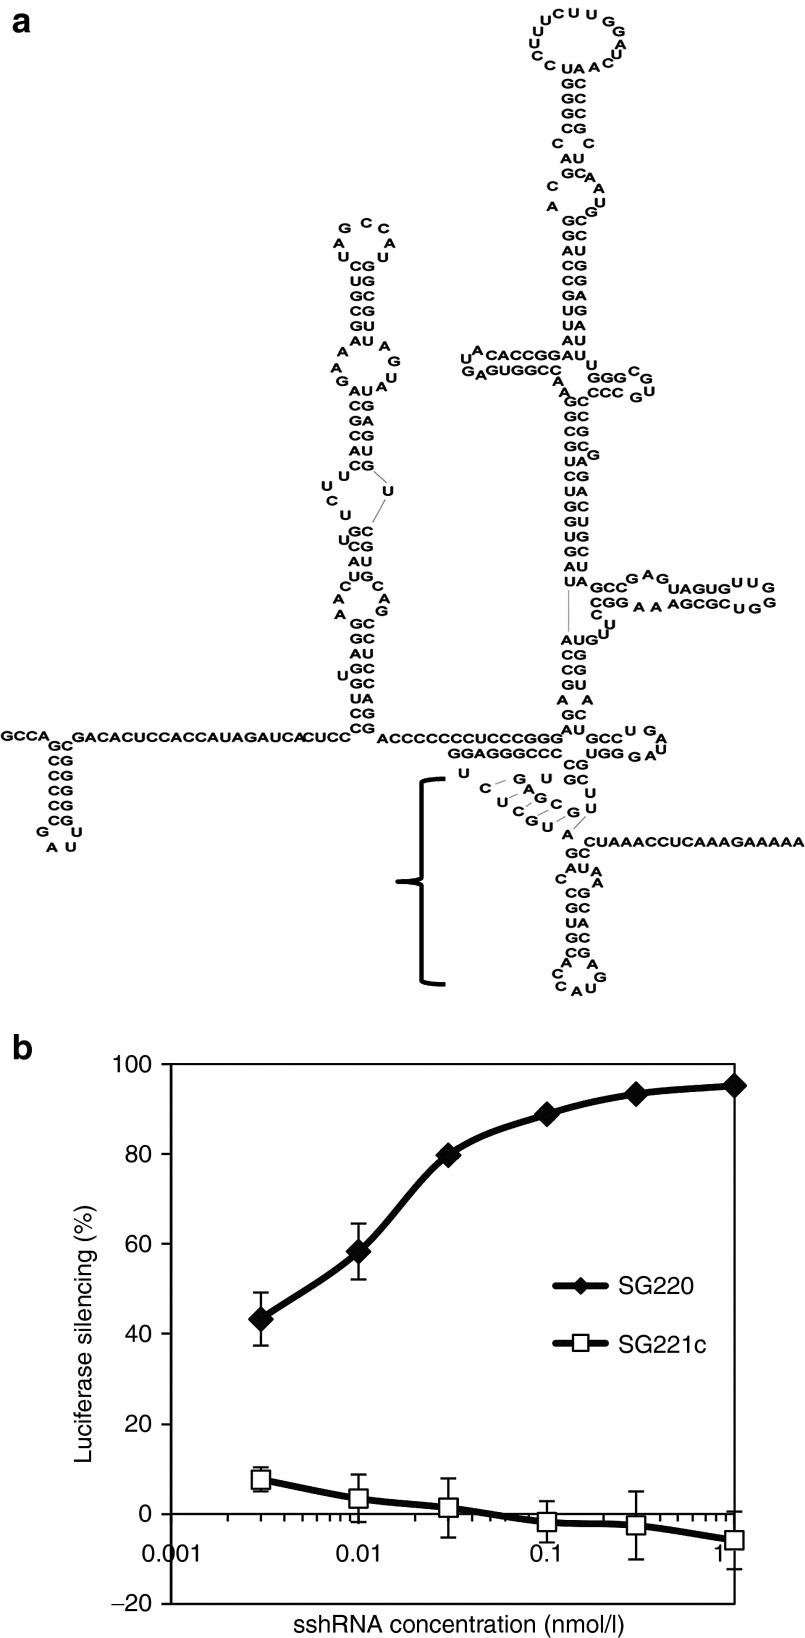 Gene silencing activity of HCV sshRNAs in vitro . ( a ) Secondary structure of the HCV IRES with the region targeted by sshRNA SG220 indicated by the bracket. ( b ) Potency of SG220 in suppressing luciferase gene expression driven by the HCV-IRES in 293FT cells. SG220 (filled diamonds); SG221C (scrambled control) (squares). The results shown are the mean va lues ± SEM from triplicate transfections.